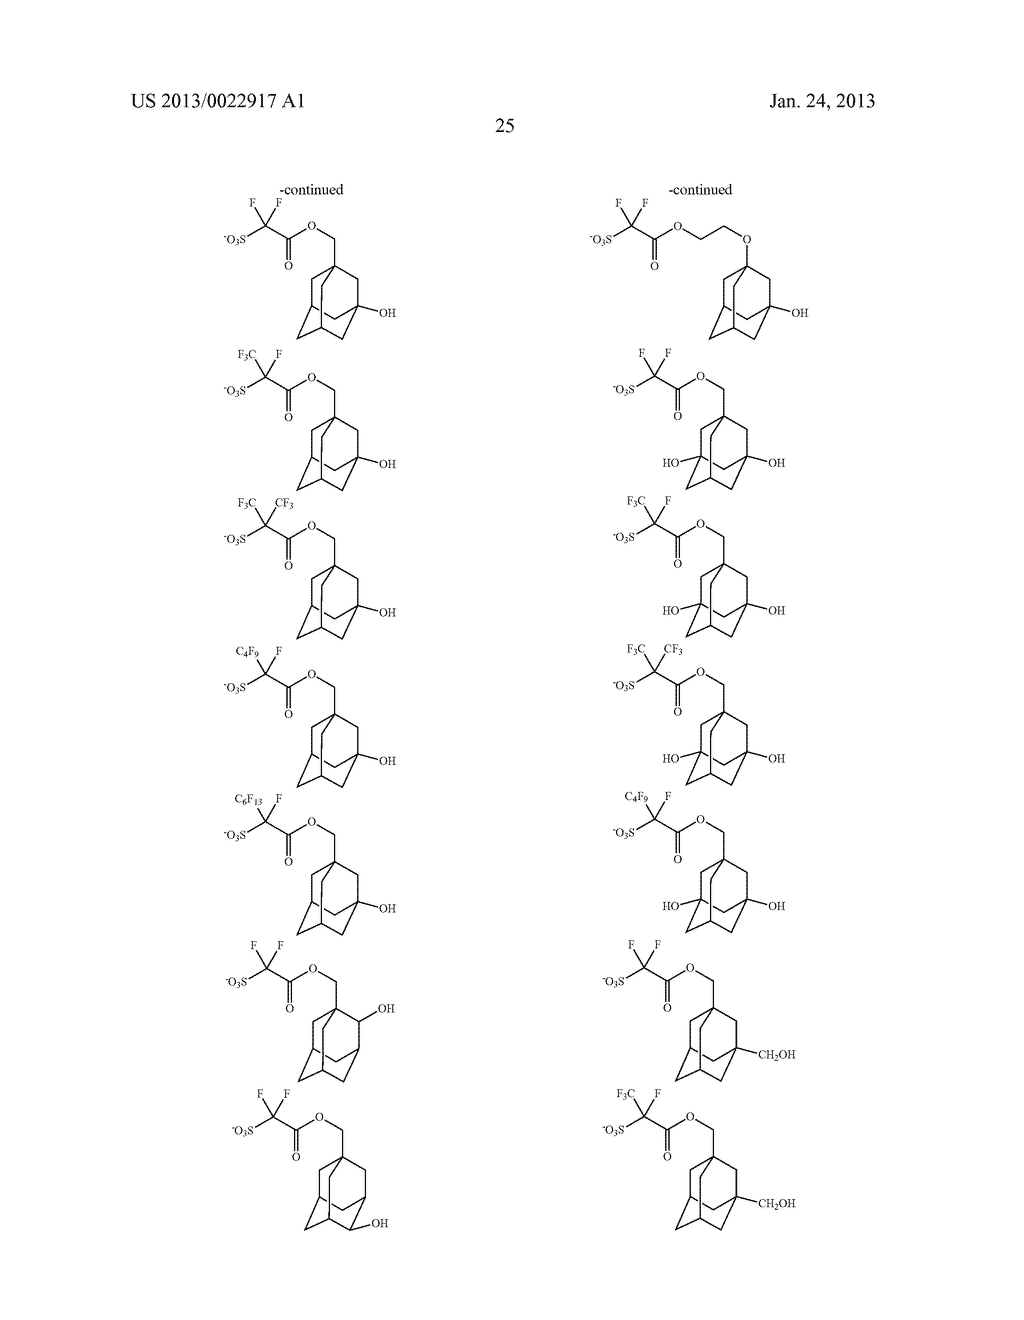 RESIST COMPOSITION AND METHOD FOR PRODUCING RESIST PATTERN - diagram, schematic, and image 26